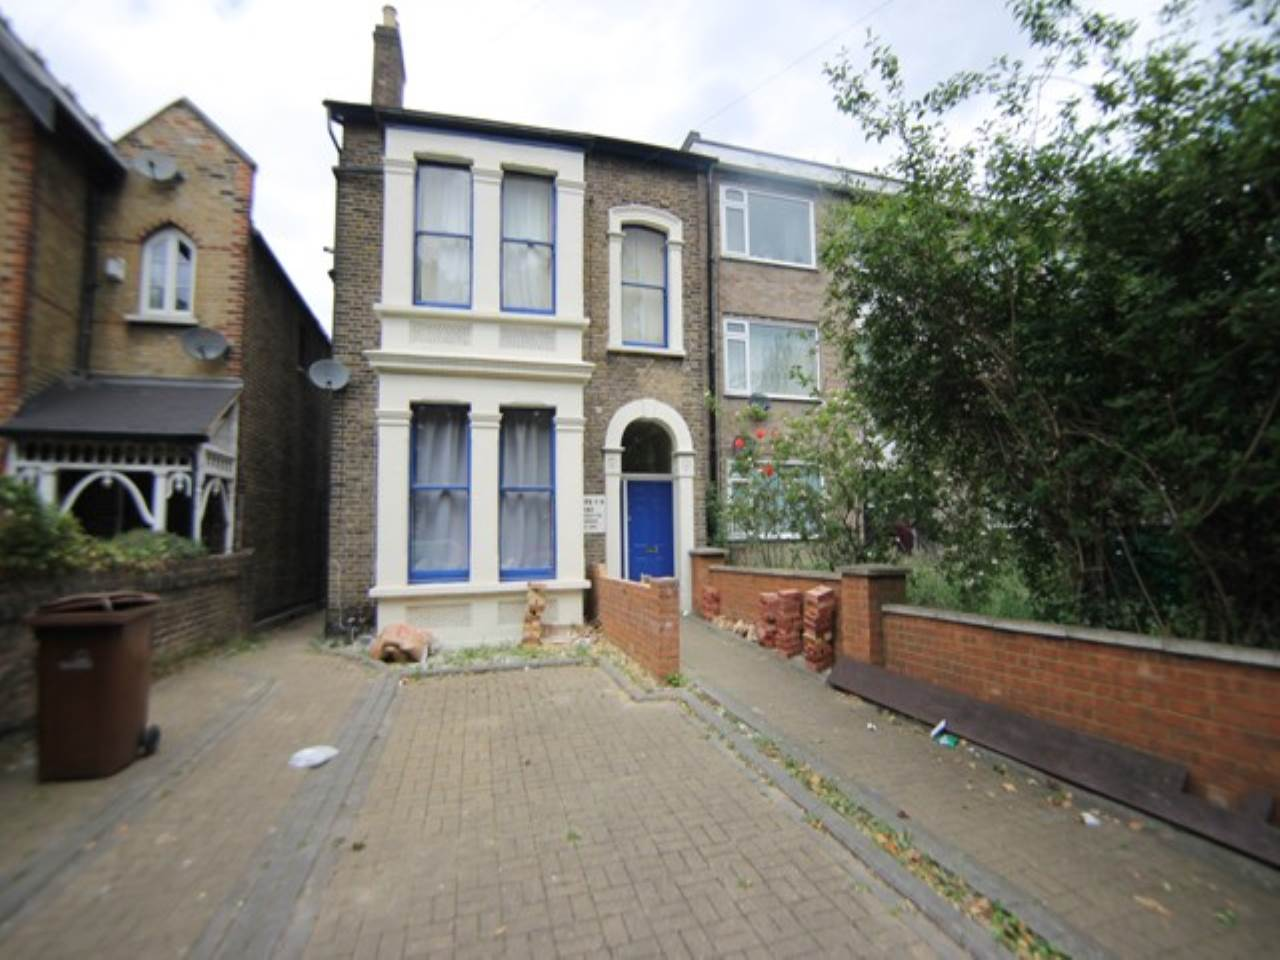 1 bed studio flat to rent in Hainault Road, Leytonstone - Property Image 1